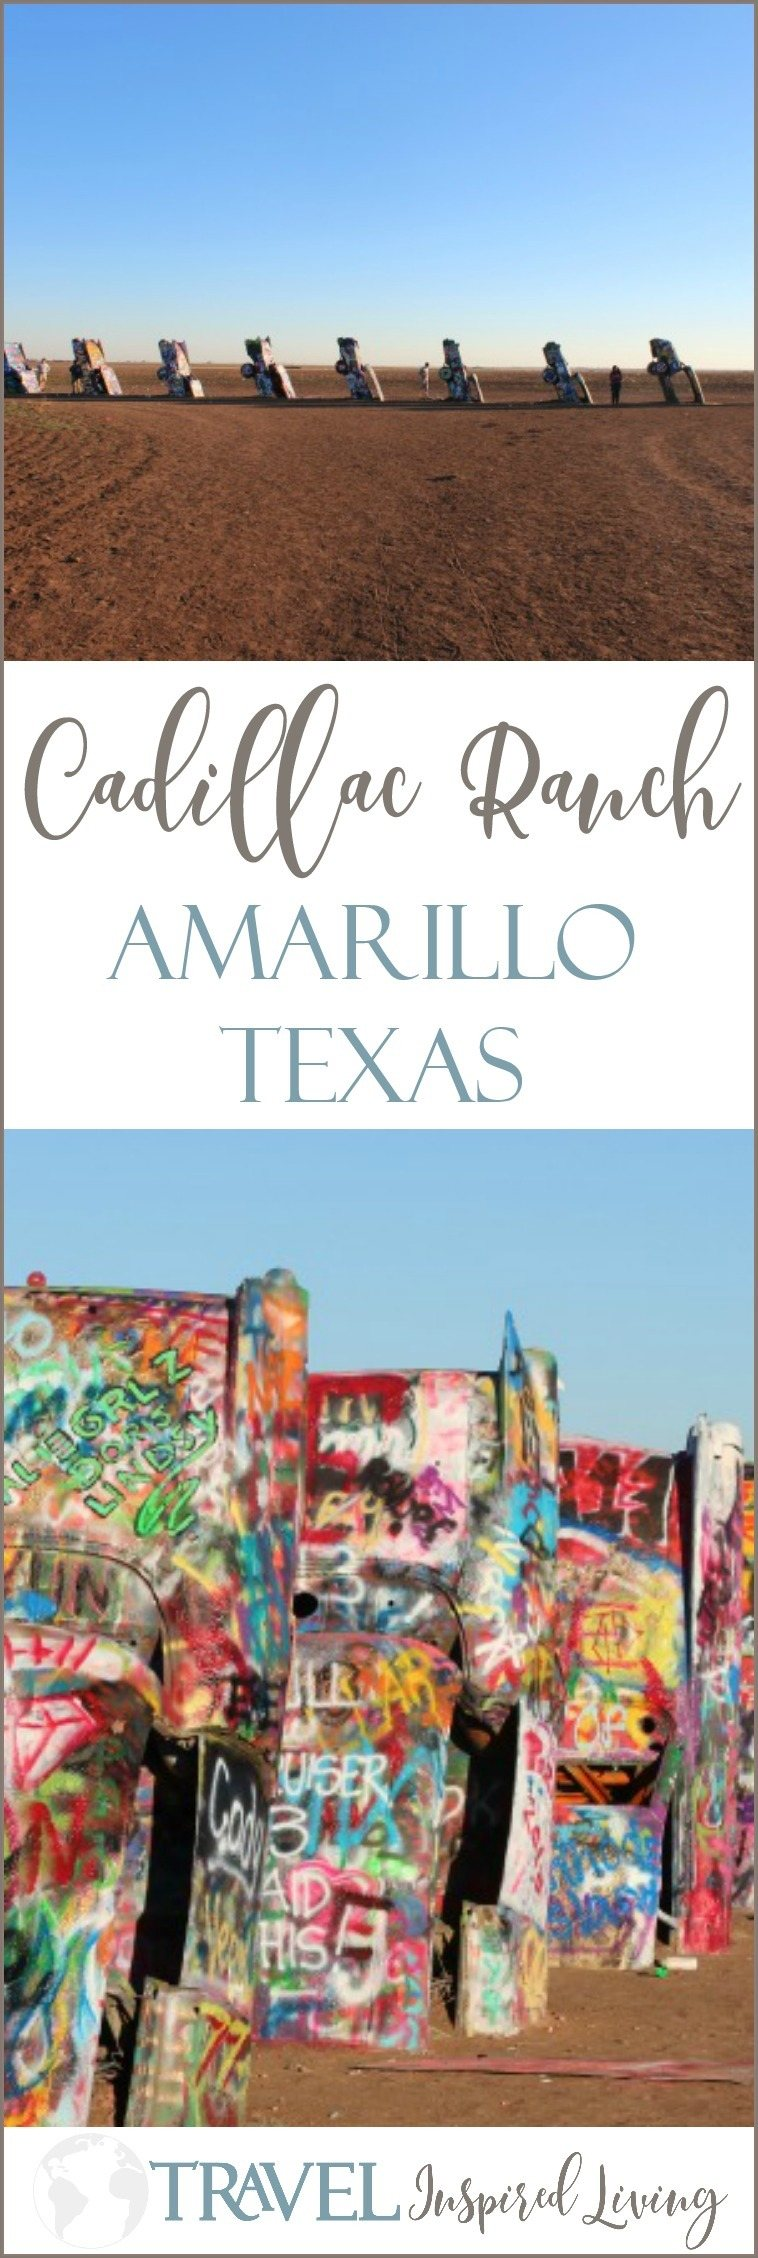 Cadillac Ranch in Amarillo Texas is a popular roadside attraction.